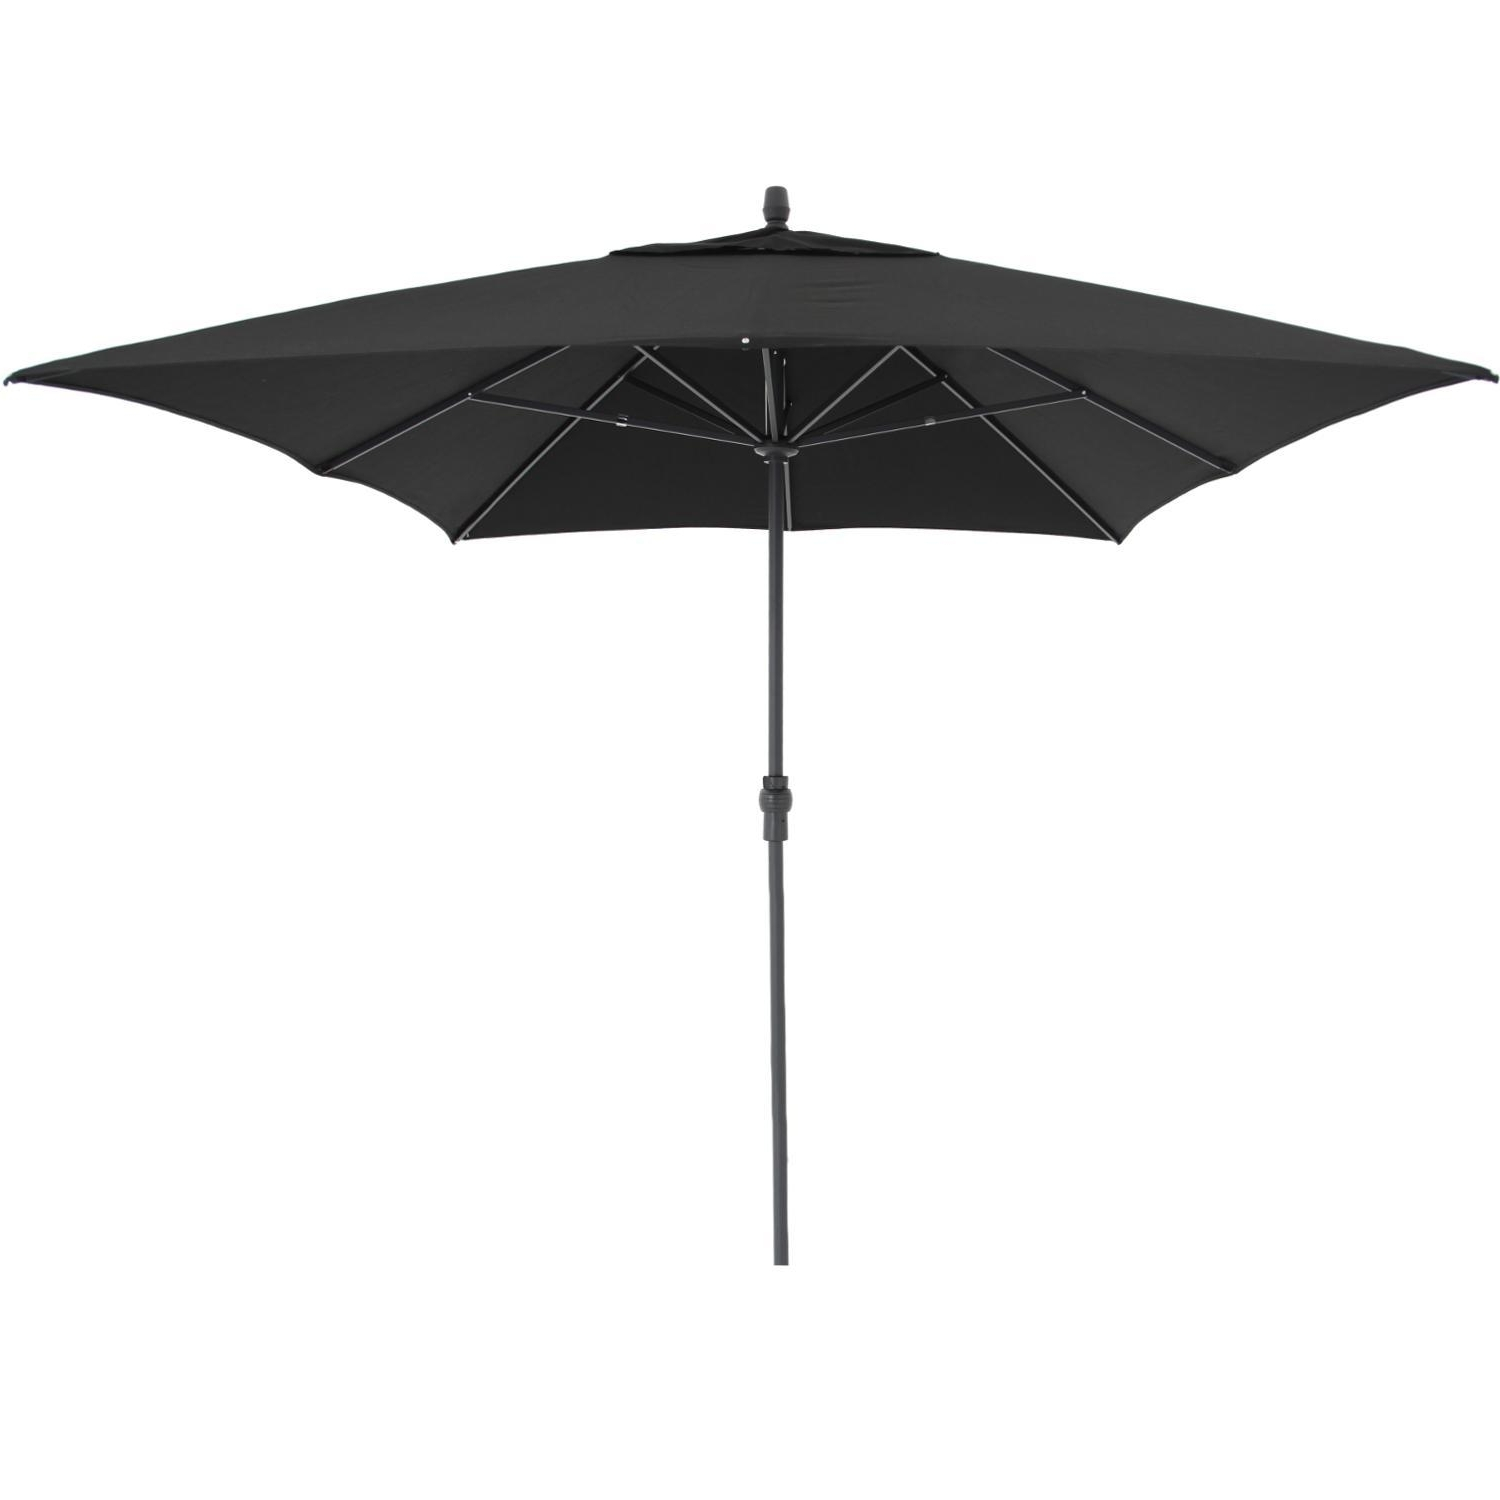 Sunbrella Black Patio Umbrellas Intended For Newest Treasure Garden 8 Ft. X 11 Ft (View 13 of 20)